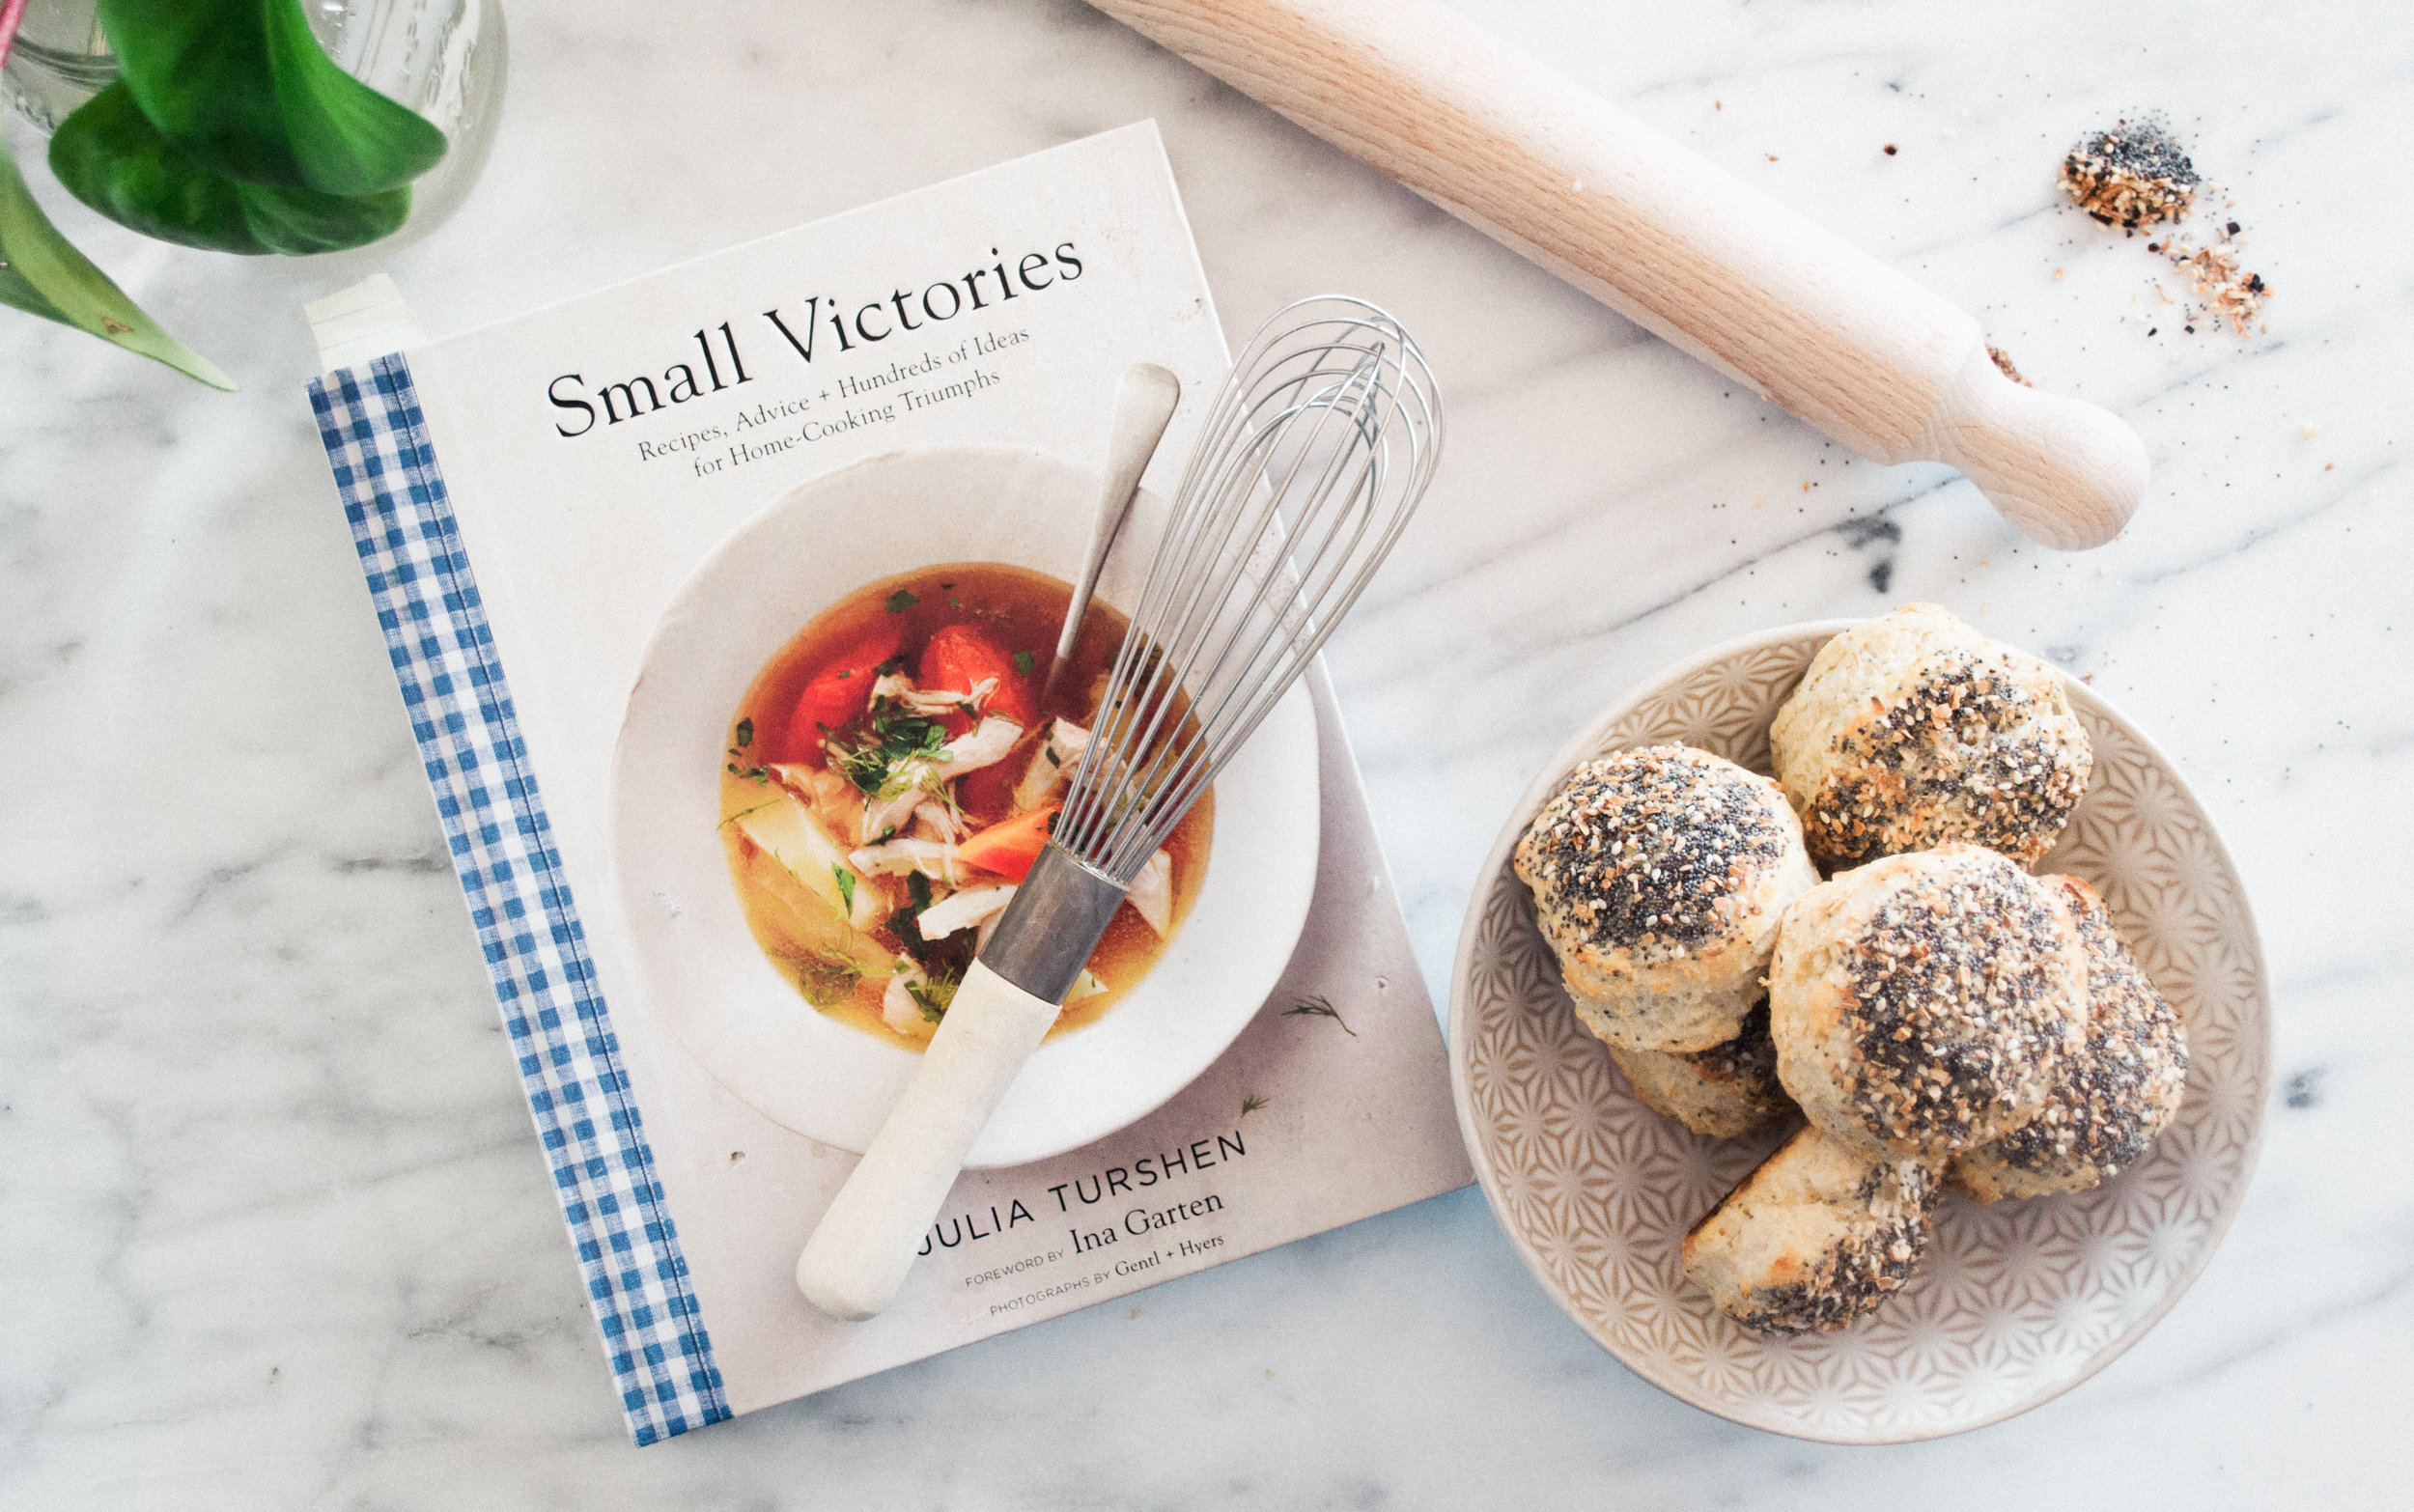 Summerfield Delight by Meg Summerfield   Review of Small Victories Cookbook by Julia Turshen    Everything Biscuits